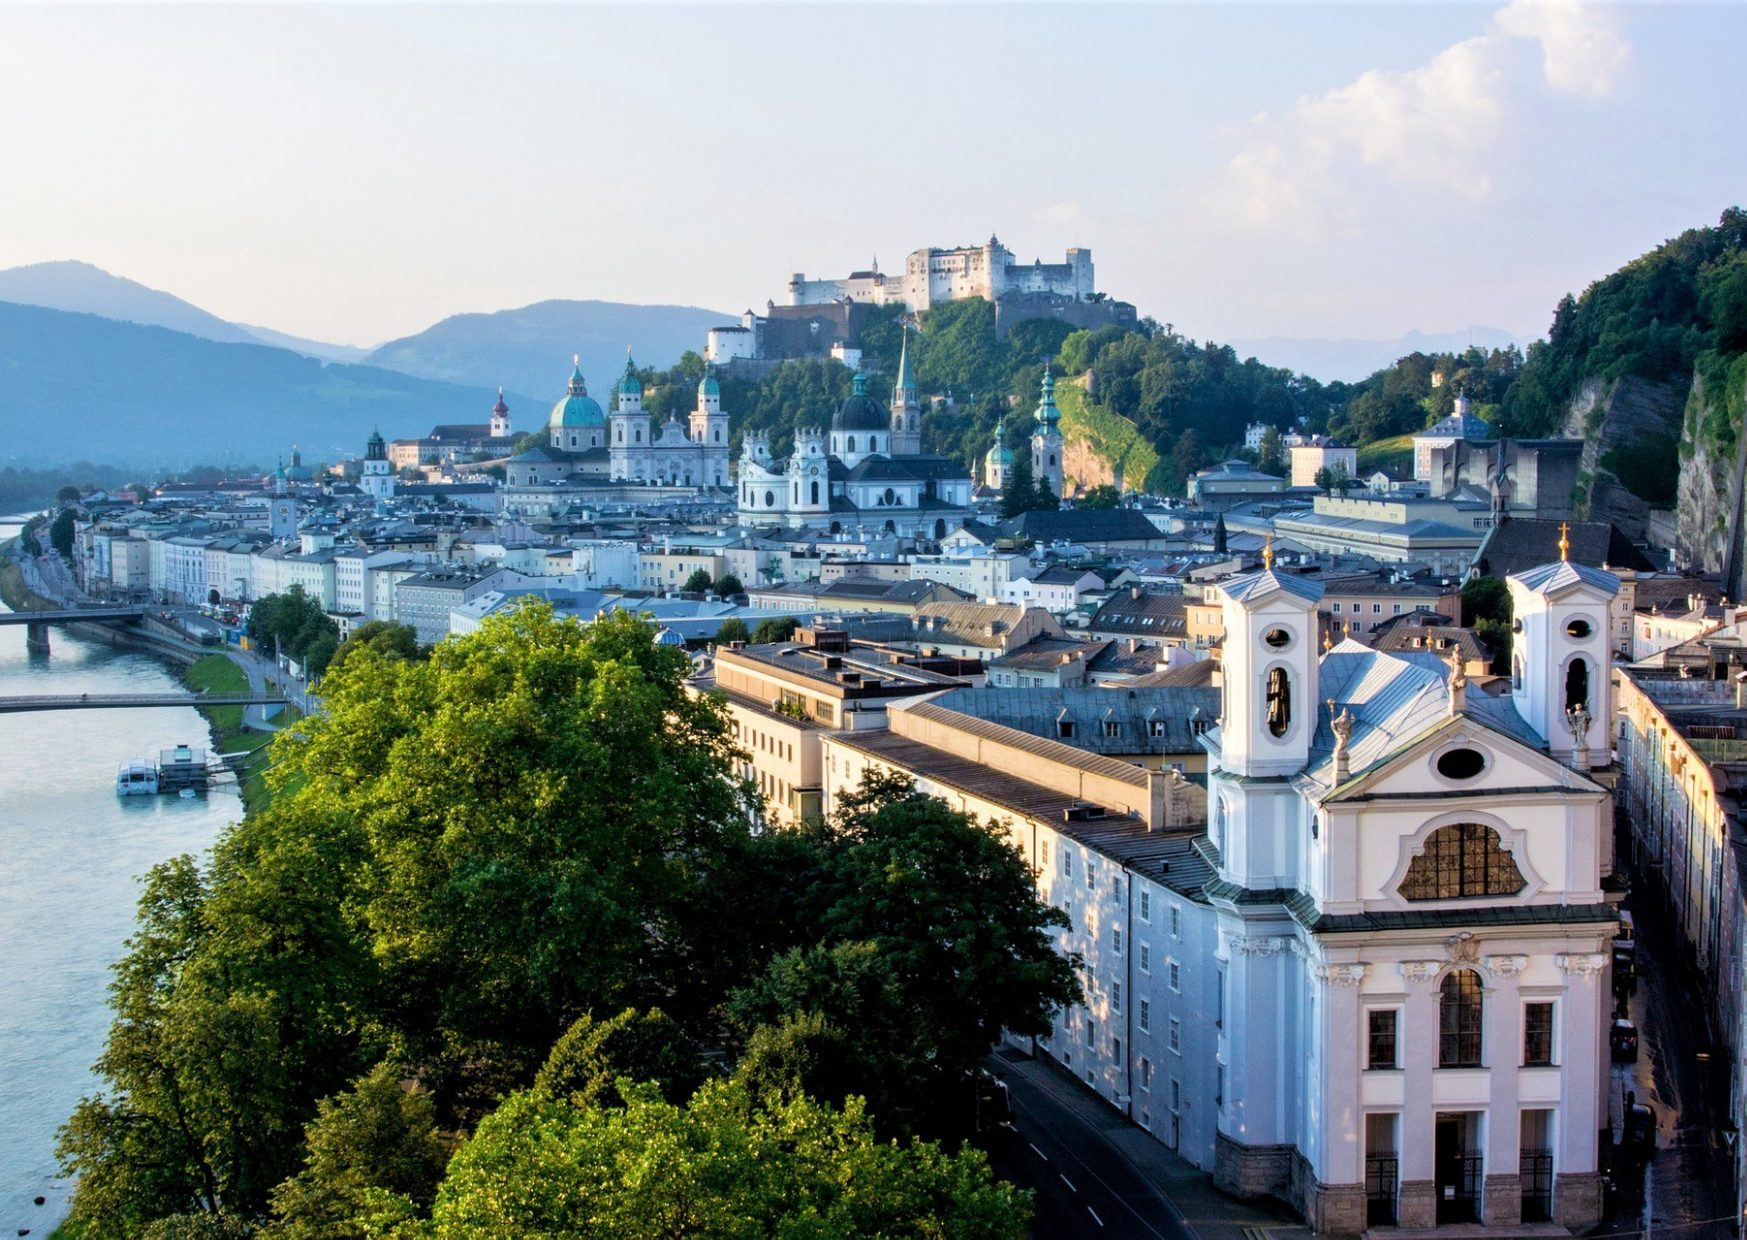 Things to do in Salzburg: Salzburg travel guide - photo by Voices of Travel